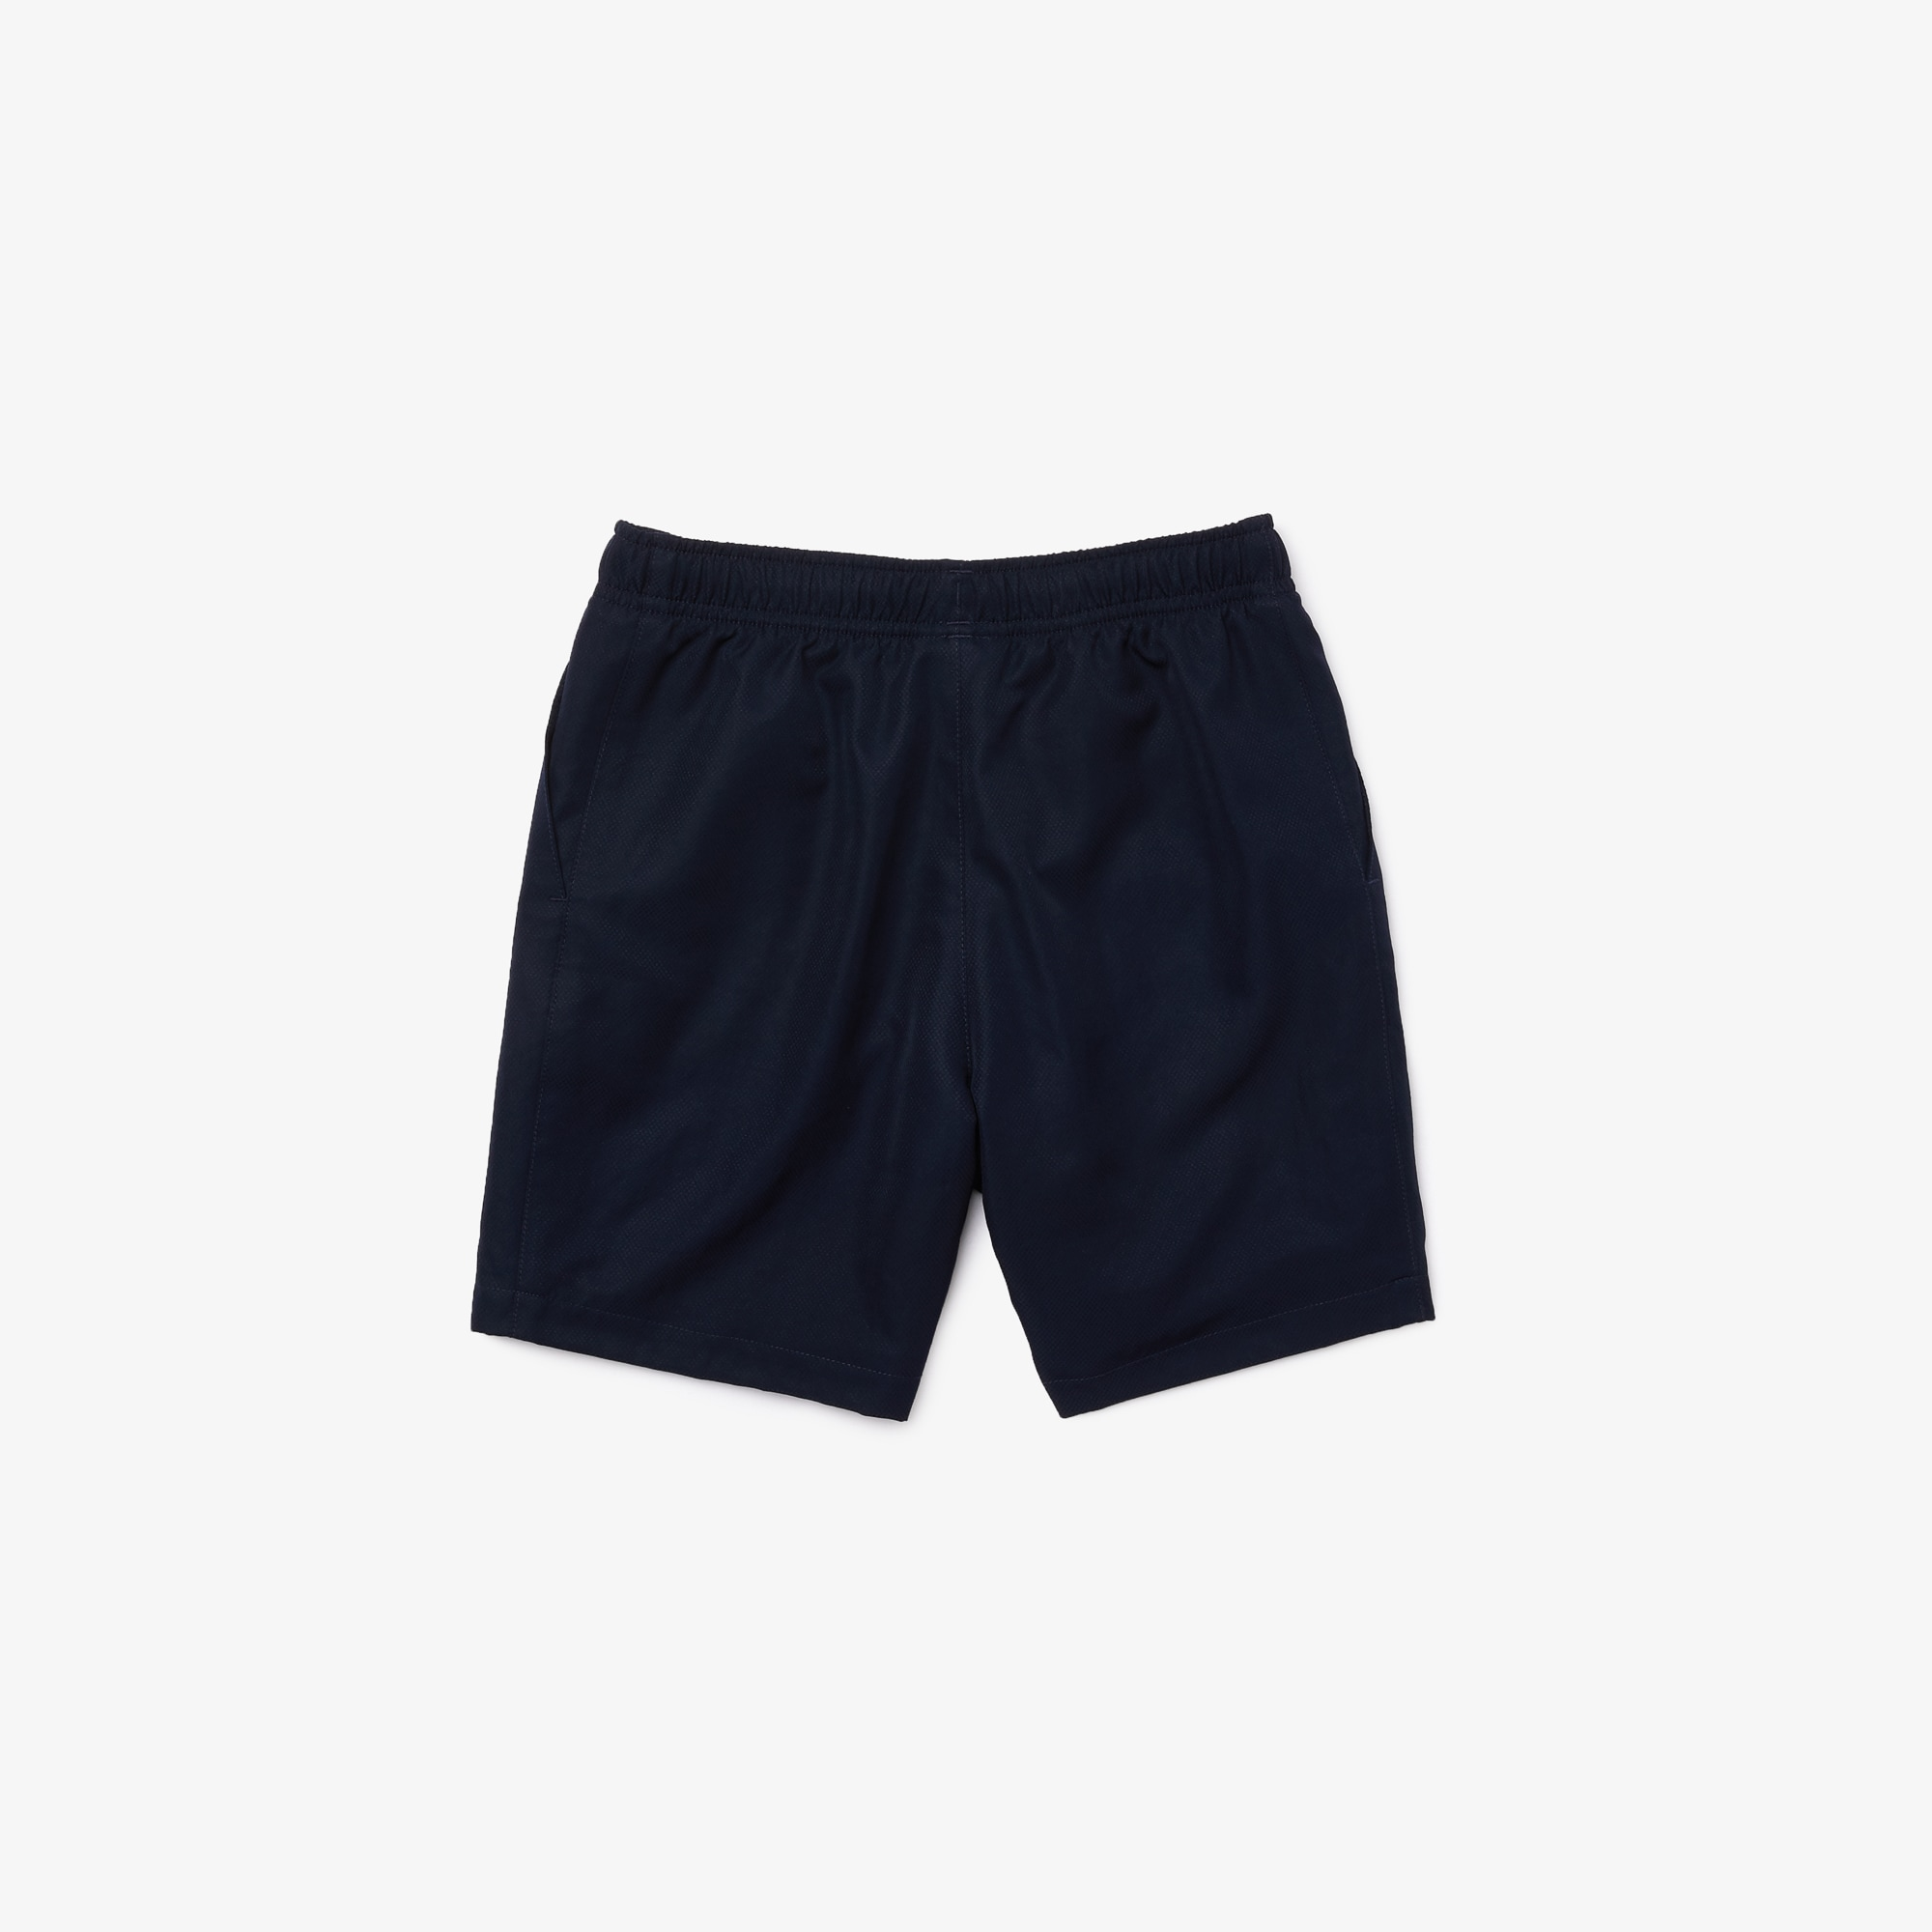 Boys' SPORT Drawstring Tennis Shorts